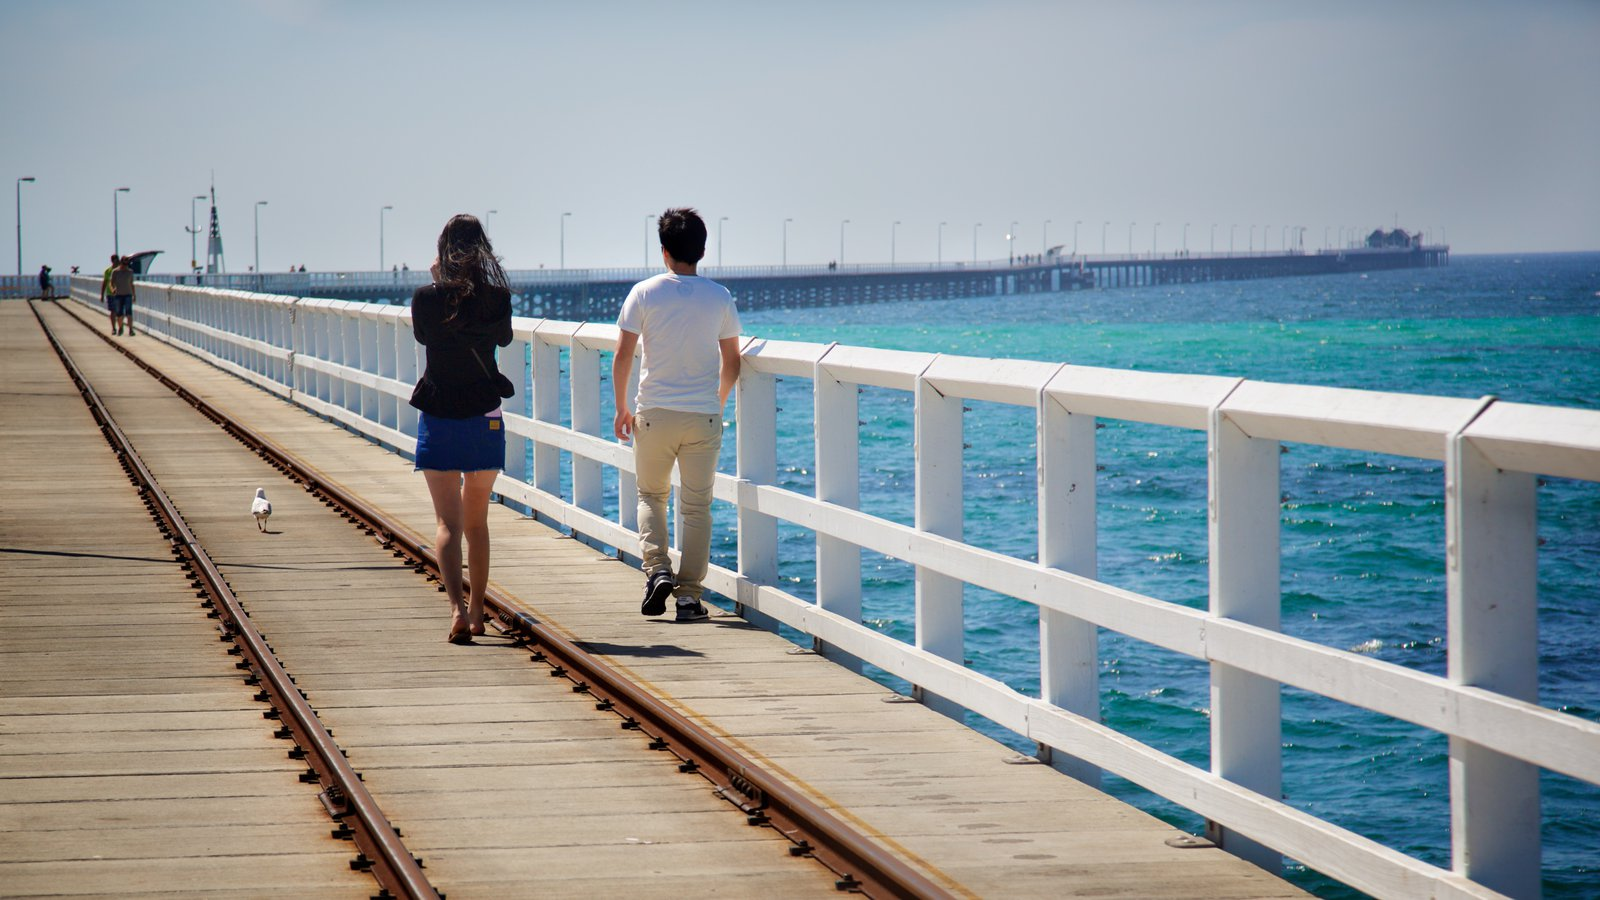 Busselton Jetty showing general coastal views as well as a couple